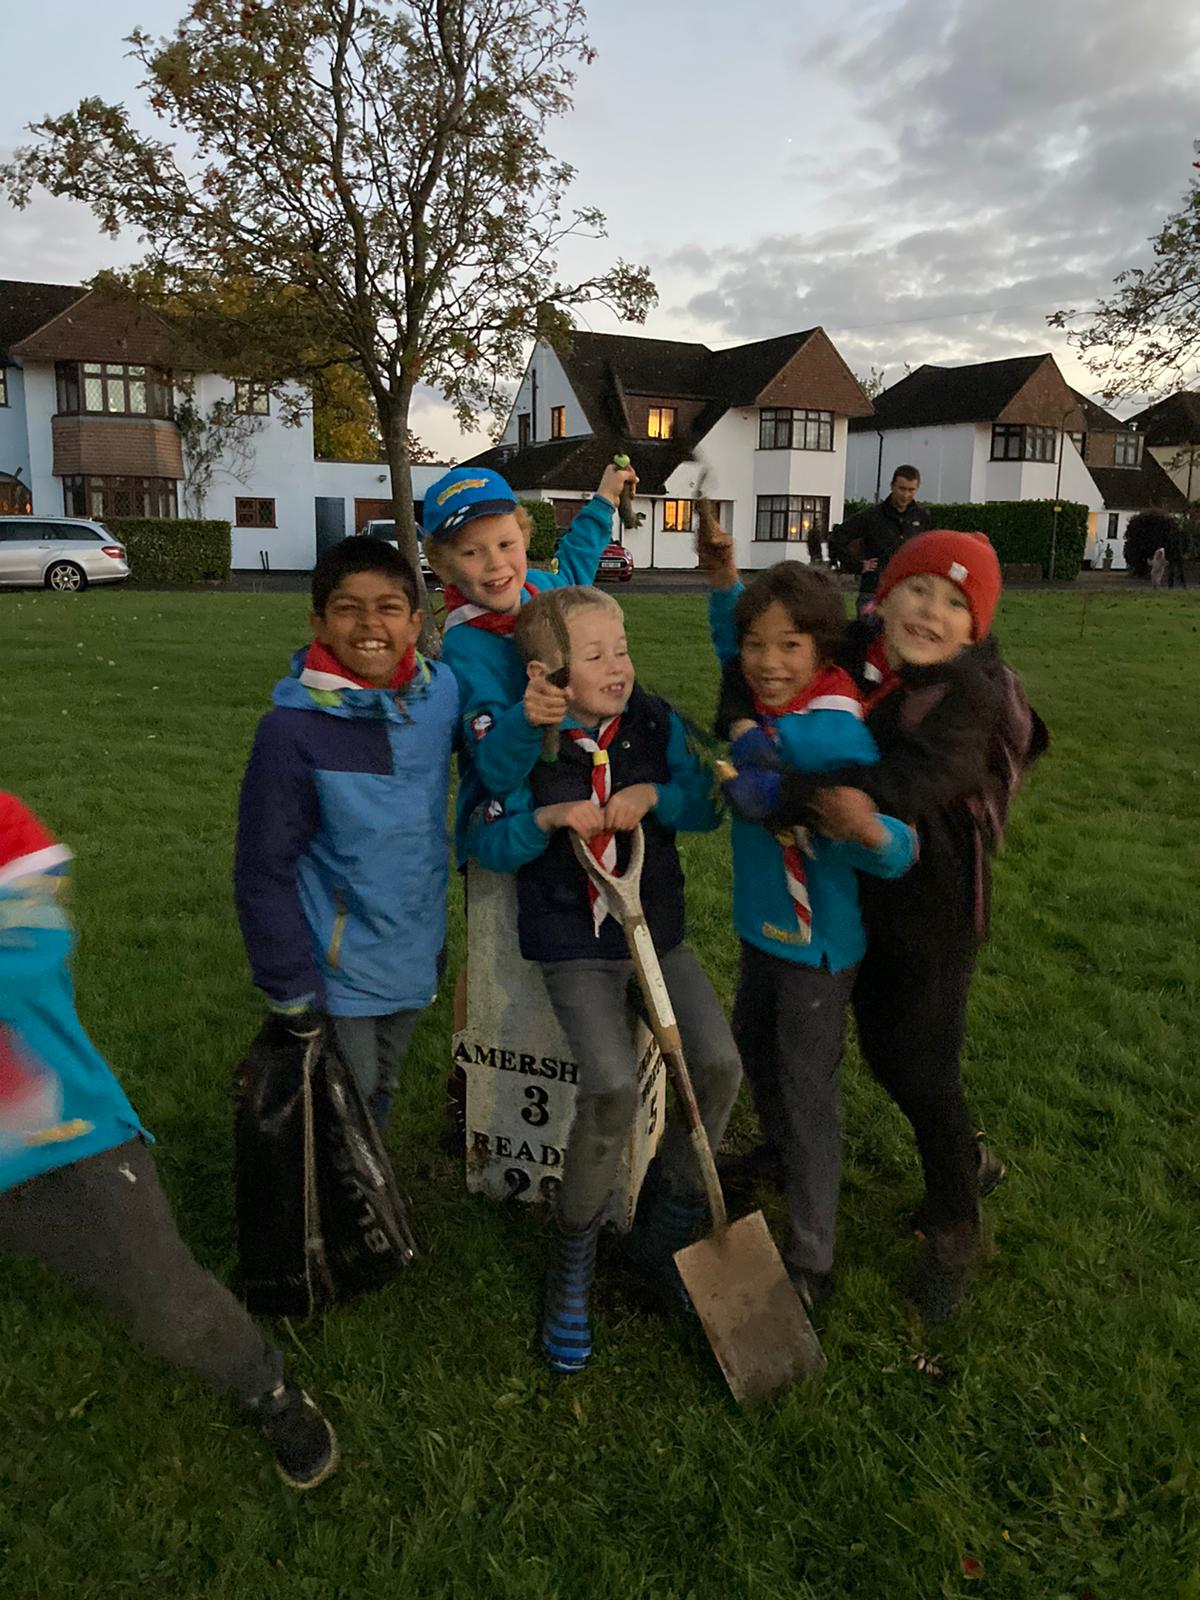 Amersham Common Beavers 2020